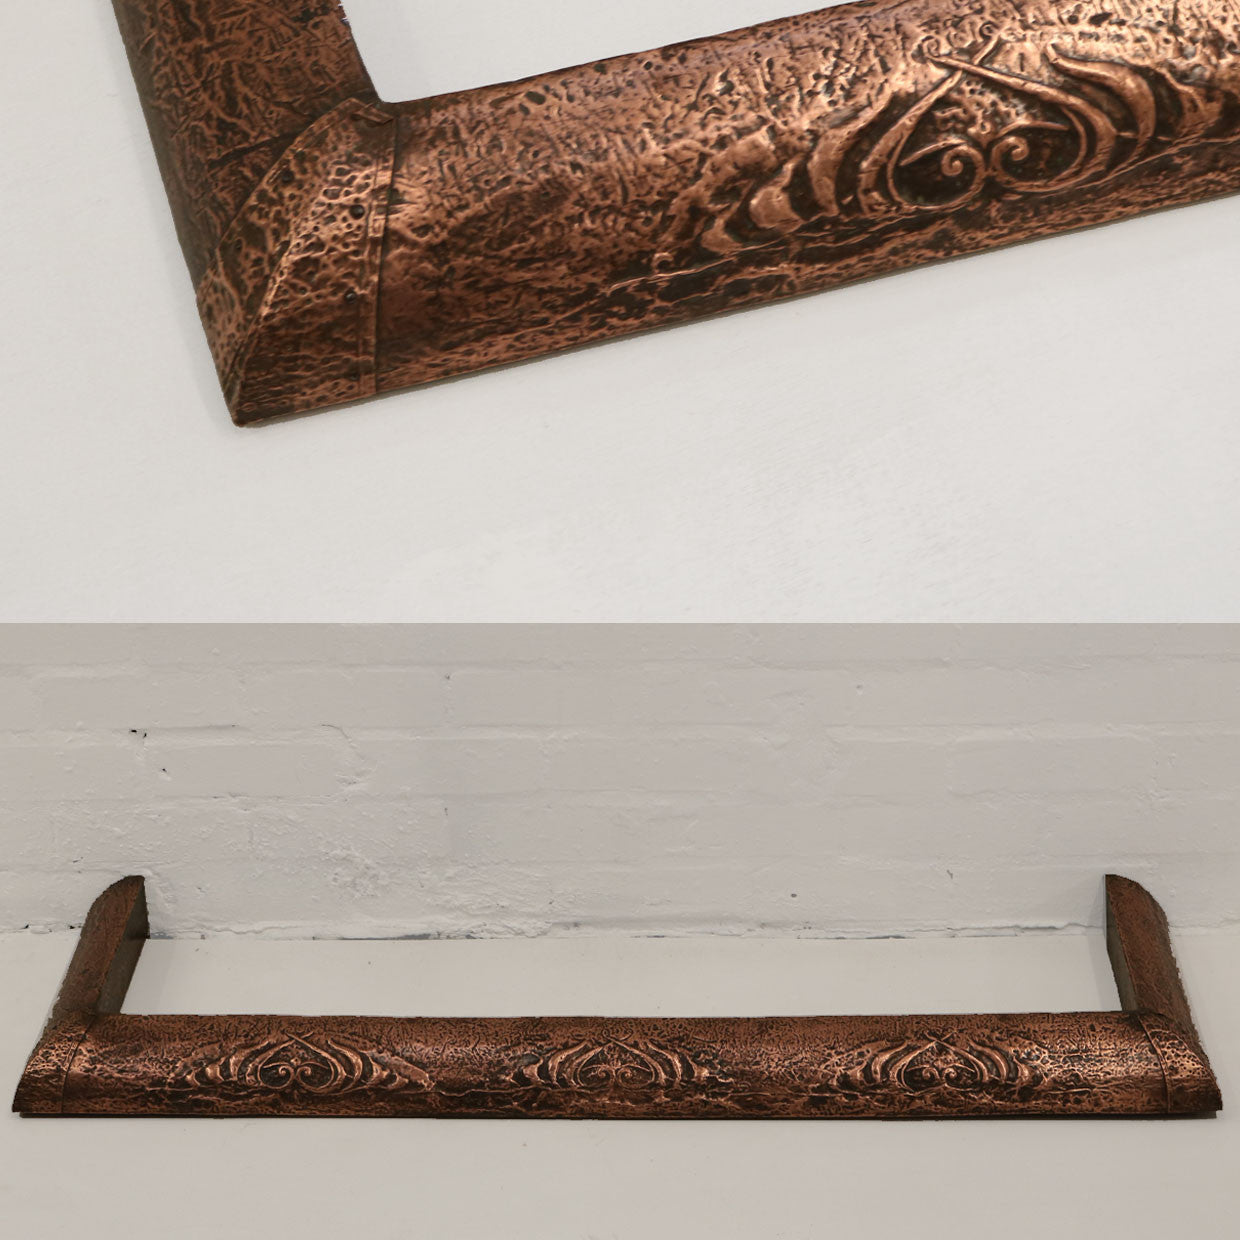 Copper Art Nouveau Fireplace Fender - architectural-forum